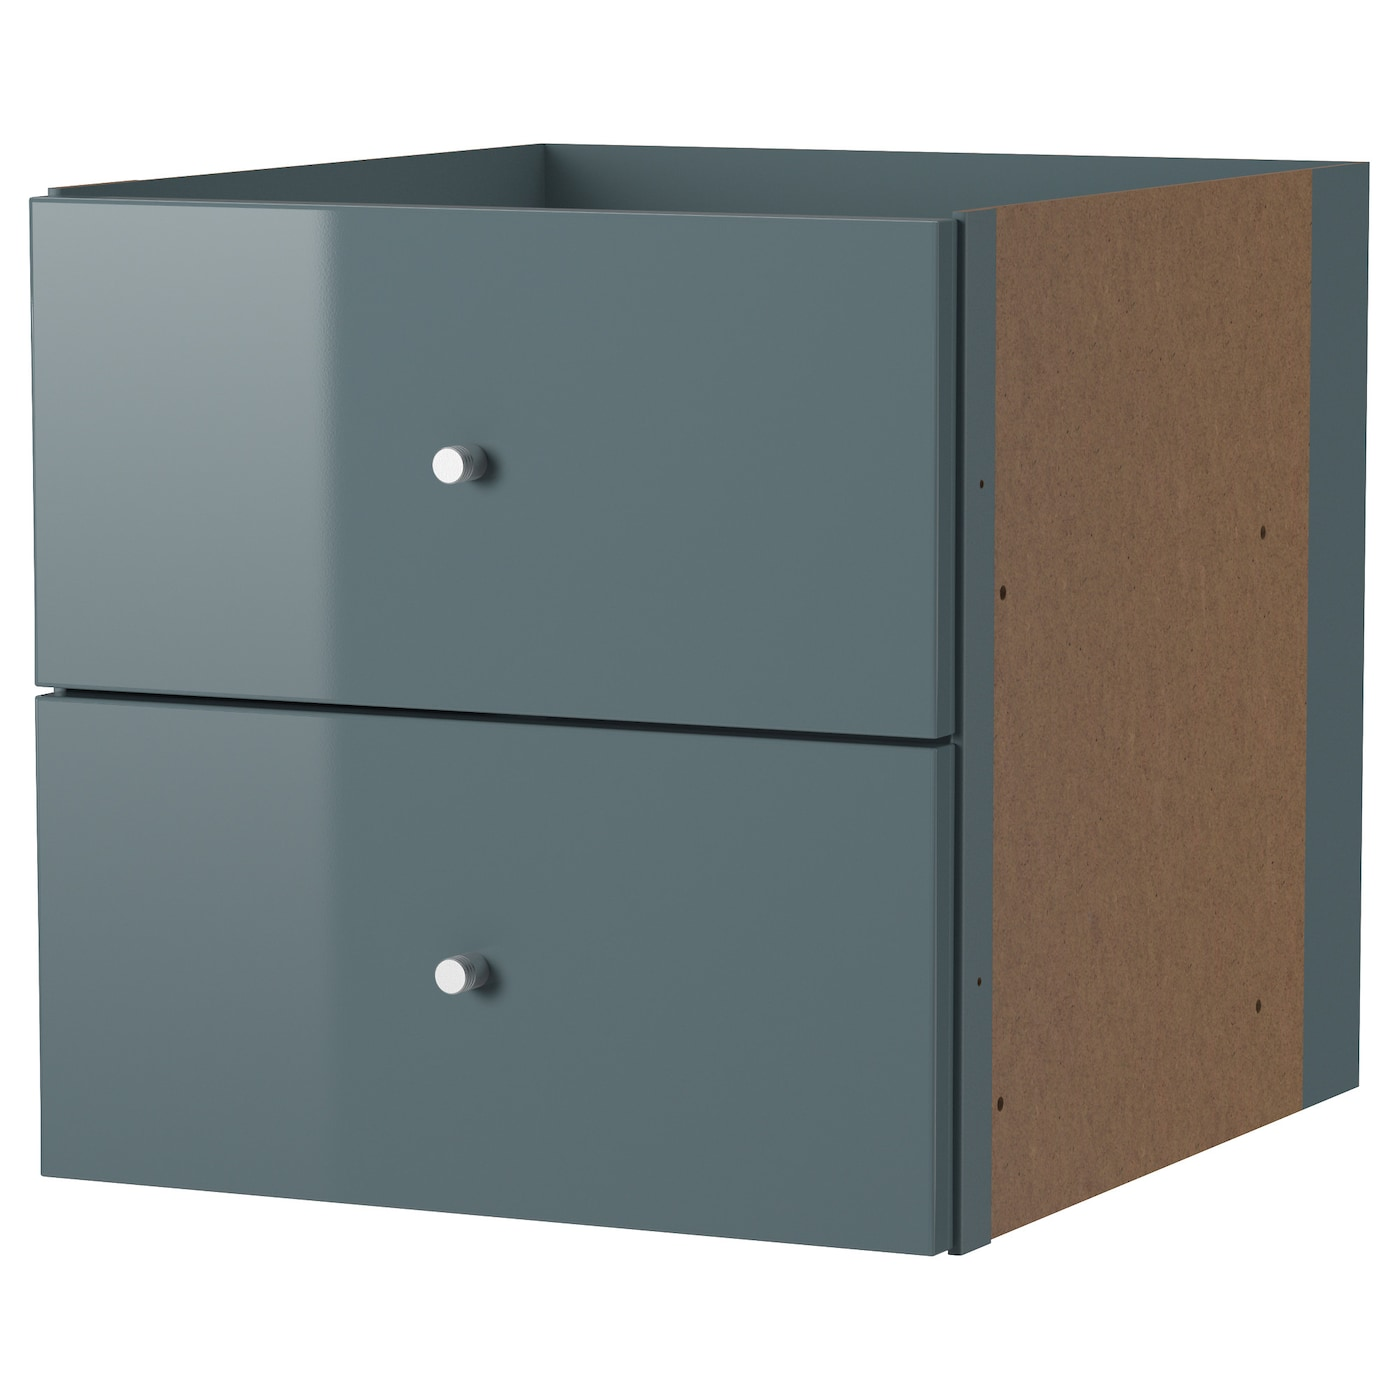 kallax bloc 2 tiroirs brillant gris turquoise 33x33 cm ikea. Black Bedroom Furniture Sets. Home Design Ideas